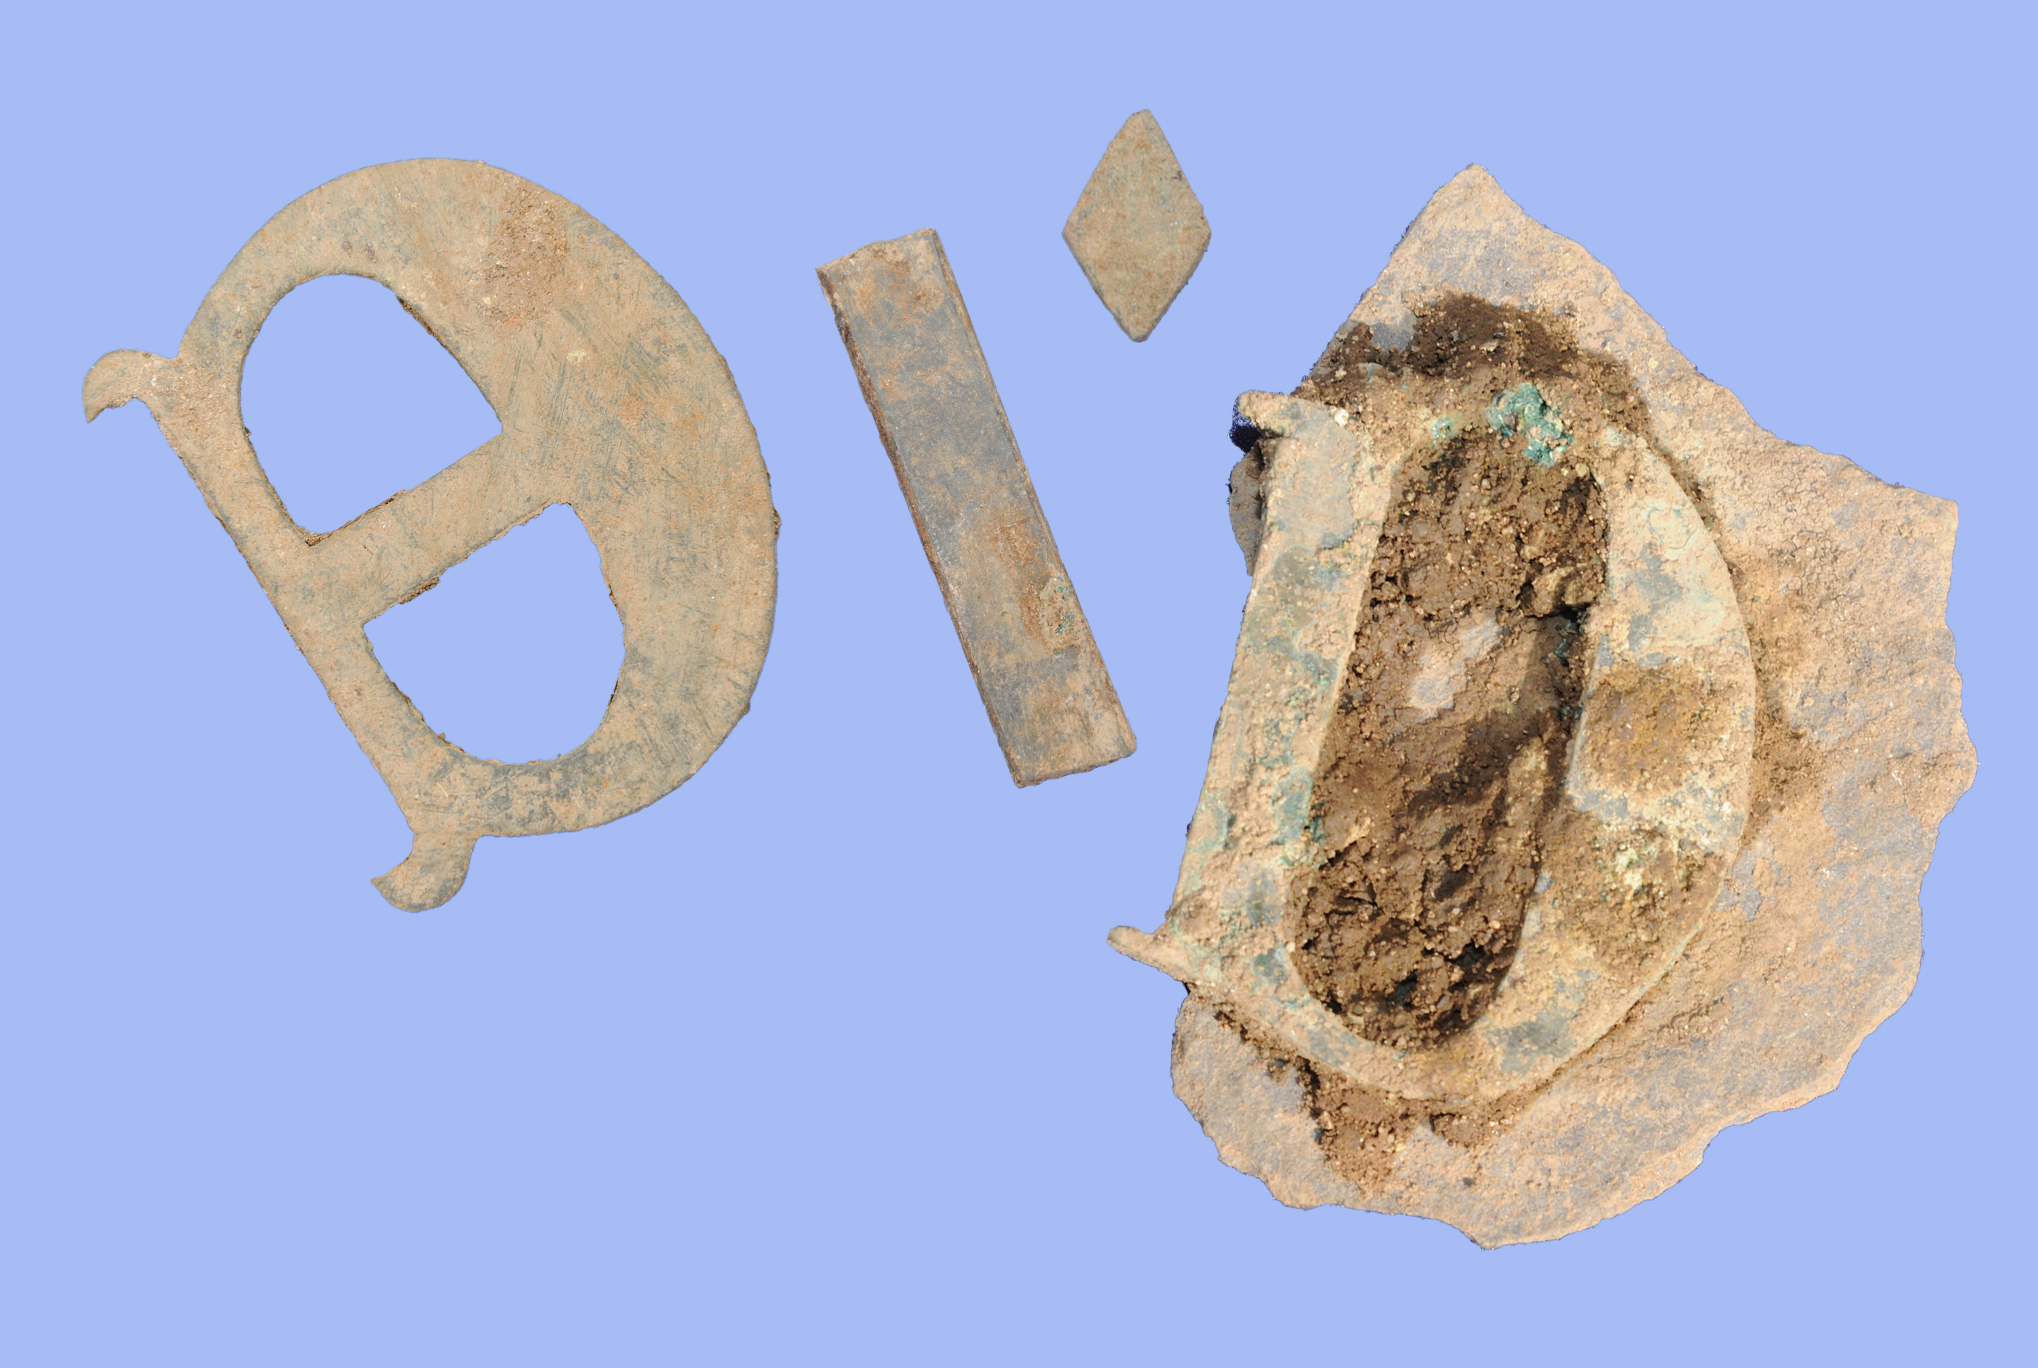 Copper alloy letters found on the site, perhaps from tomb inscriptions (Credit - University of Leicester)